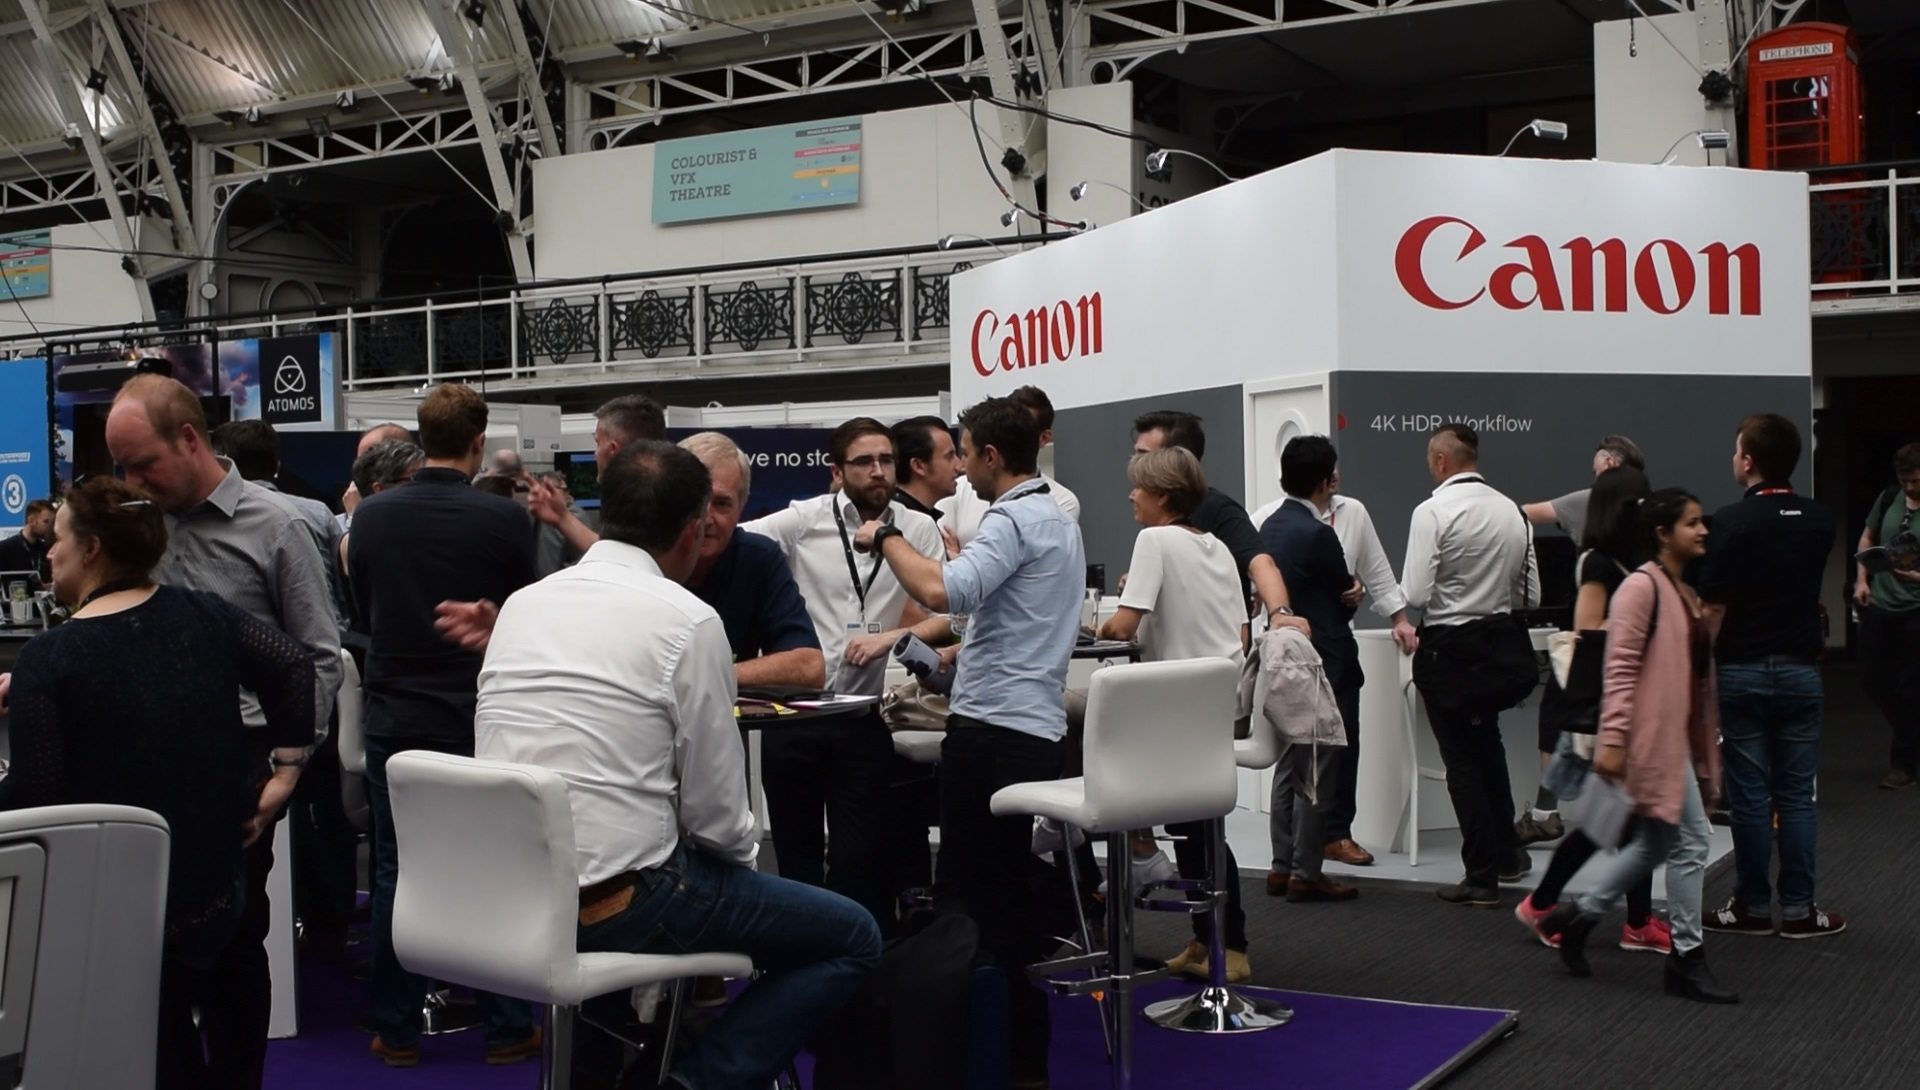 marketing at trade shows - networking